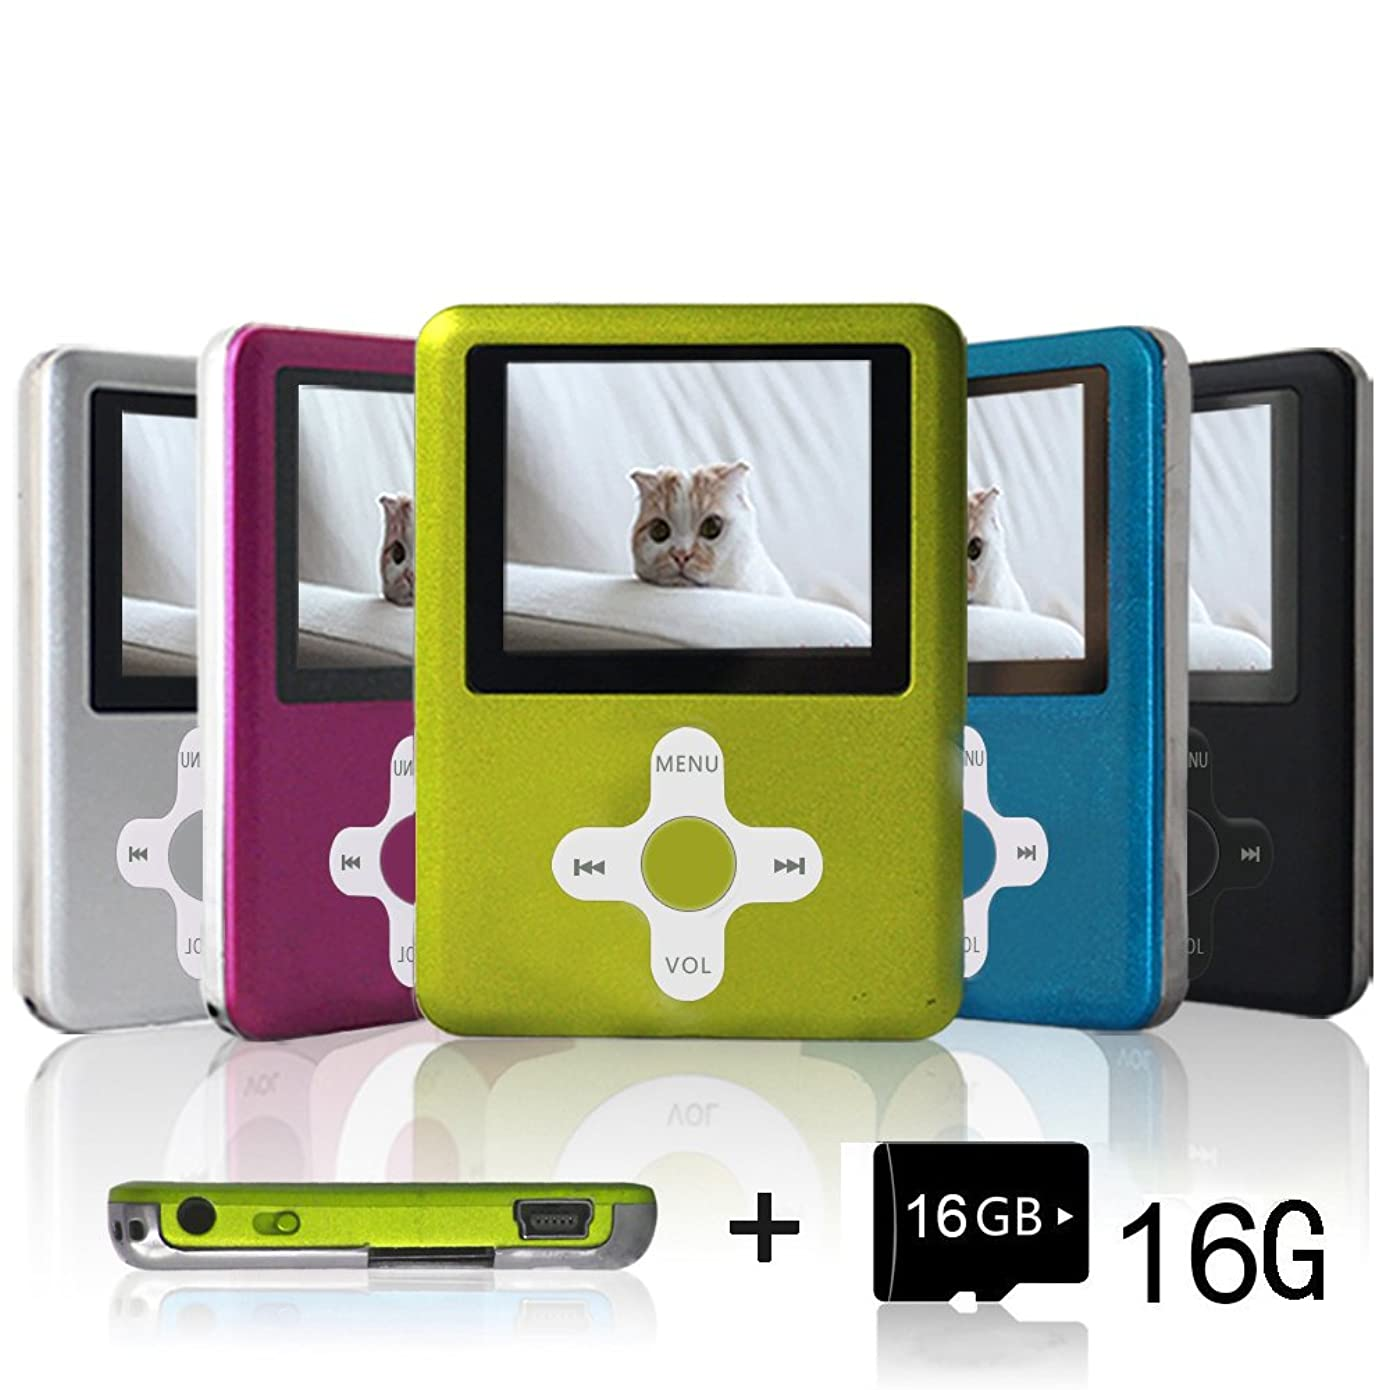 Lecmal Mp3 / Mp4 Player with 16Gb Micro SD Card and FM Radio Function, Media Player for Kids-SGreen